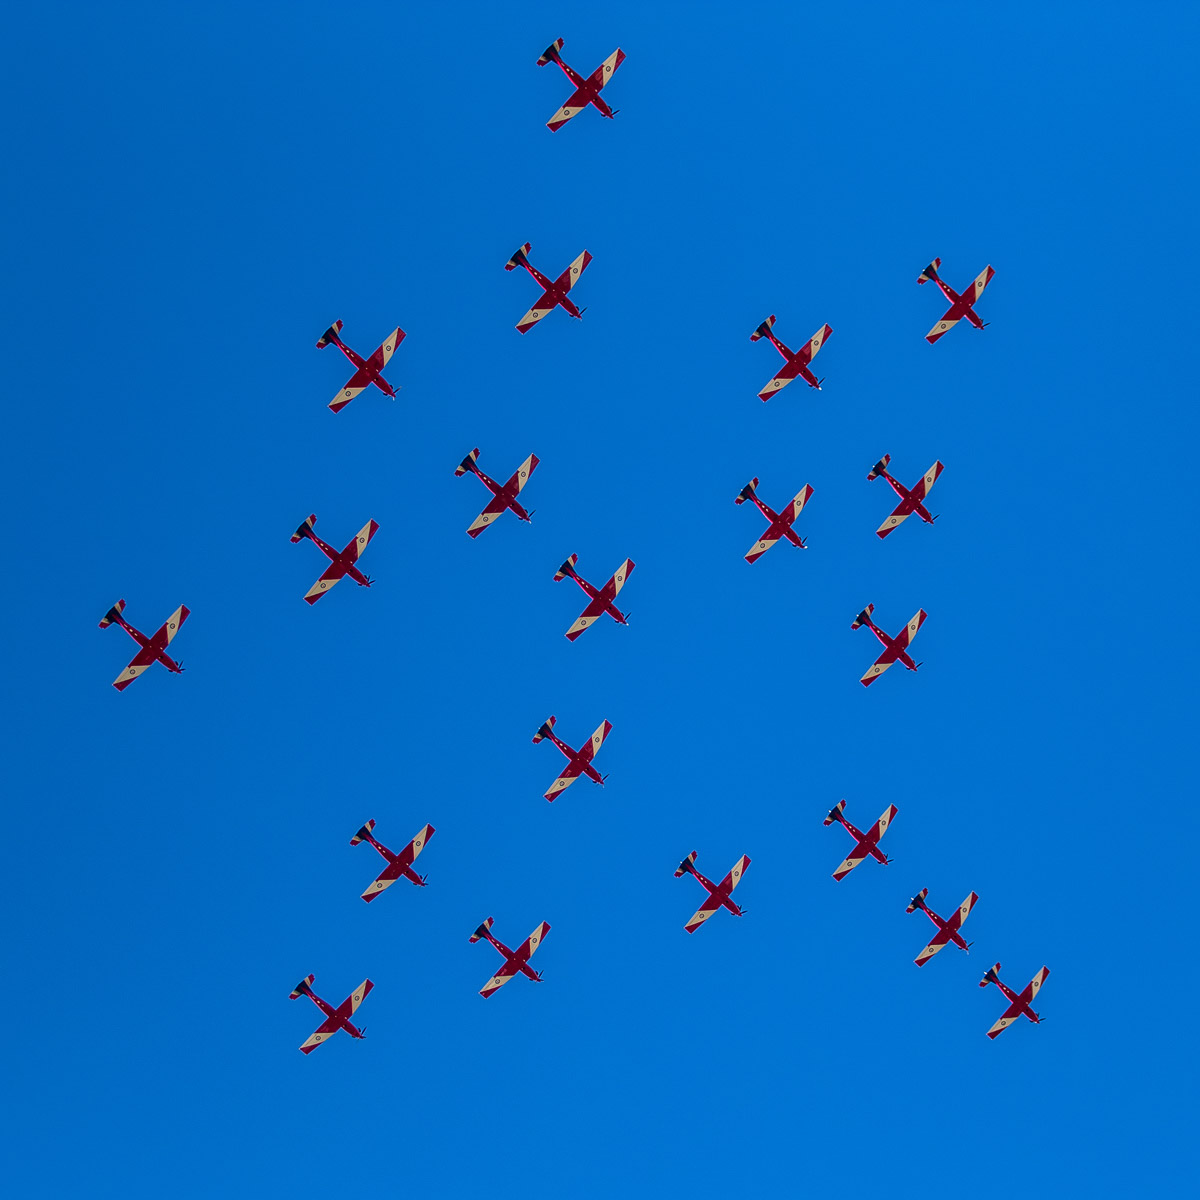 20 Pilatus PC-9/A aircraft of 2 Flying Training School (2FTS), RAAF, based at Pearce, WA, in Thunderbird formation over Monument Hill War Memorial, Fremantle – Thu 12 March 2015. The 'Thunderbird' formation was a salute to nine Australian Defence Force students of number 238 Pilots Course who graduated as military aviators in a ceremony held the next day, on Fri 13 March 2015 at RAAF Base Pearce, after their 38-week course with 2 Flying Training School (2FTS). The Thunderbird formation is also treated as a training activity for the student pilots. After taking off from RAAF Pearce, they gathered into their formation west of Gingin, then headed south west to pass over Rottnest Island, over Fremantle (as seen here after 4pm), then up the Swan River to pass in front of Perth city, before before passing over RAAF Pearce for a flypast and landing. Photo © Tim Grimes